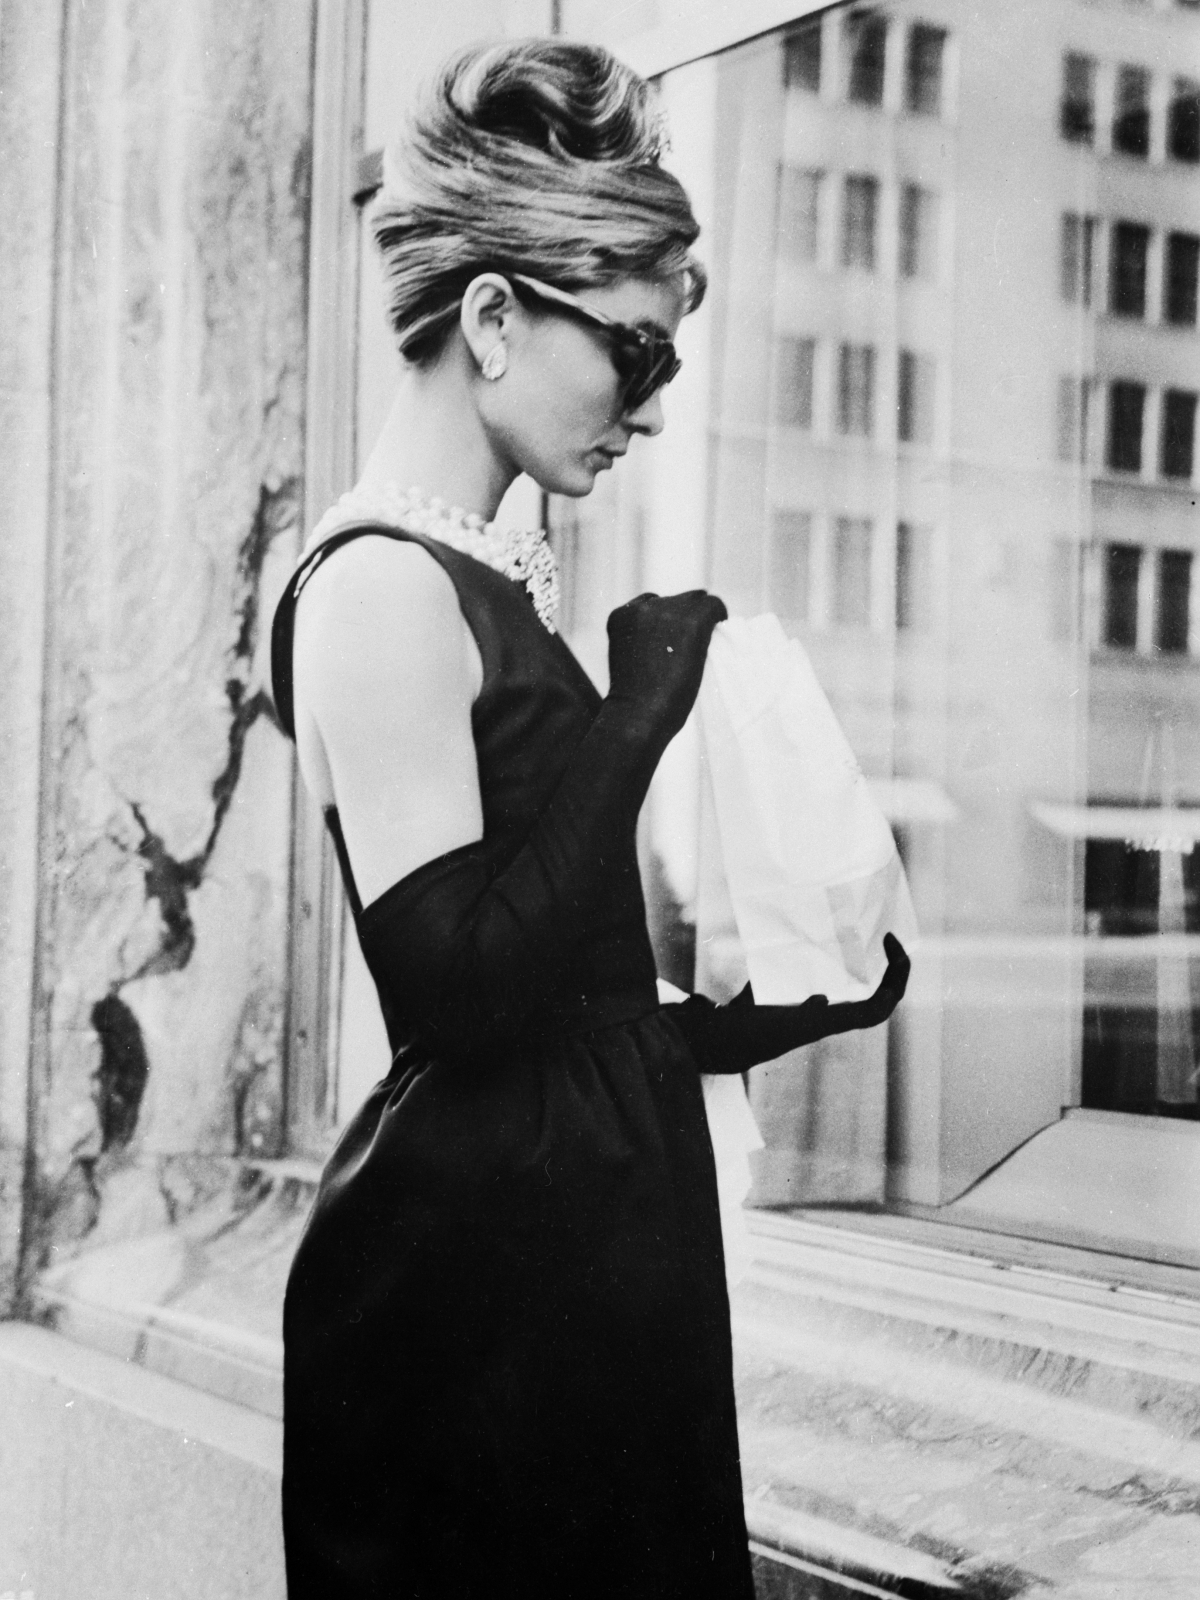 udrey Hepburn in New York during location filming for Breakfast At Tiffany's